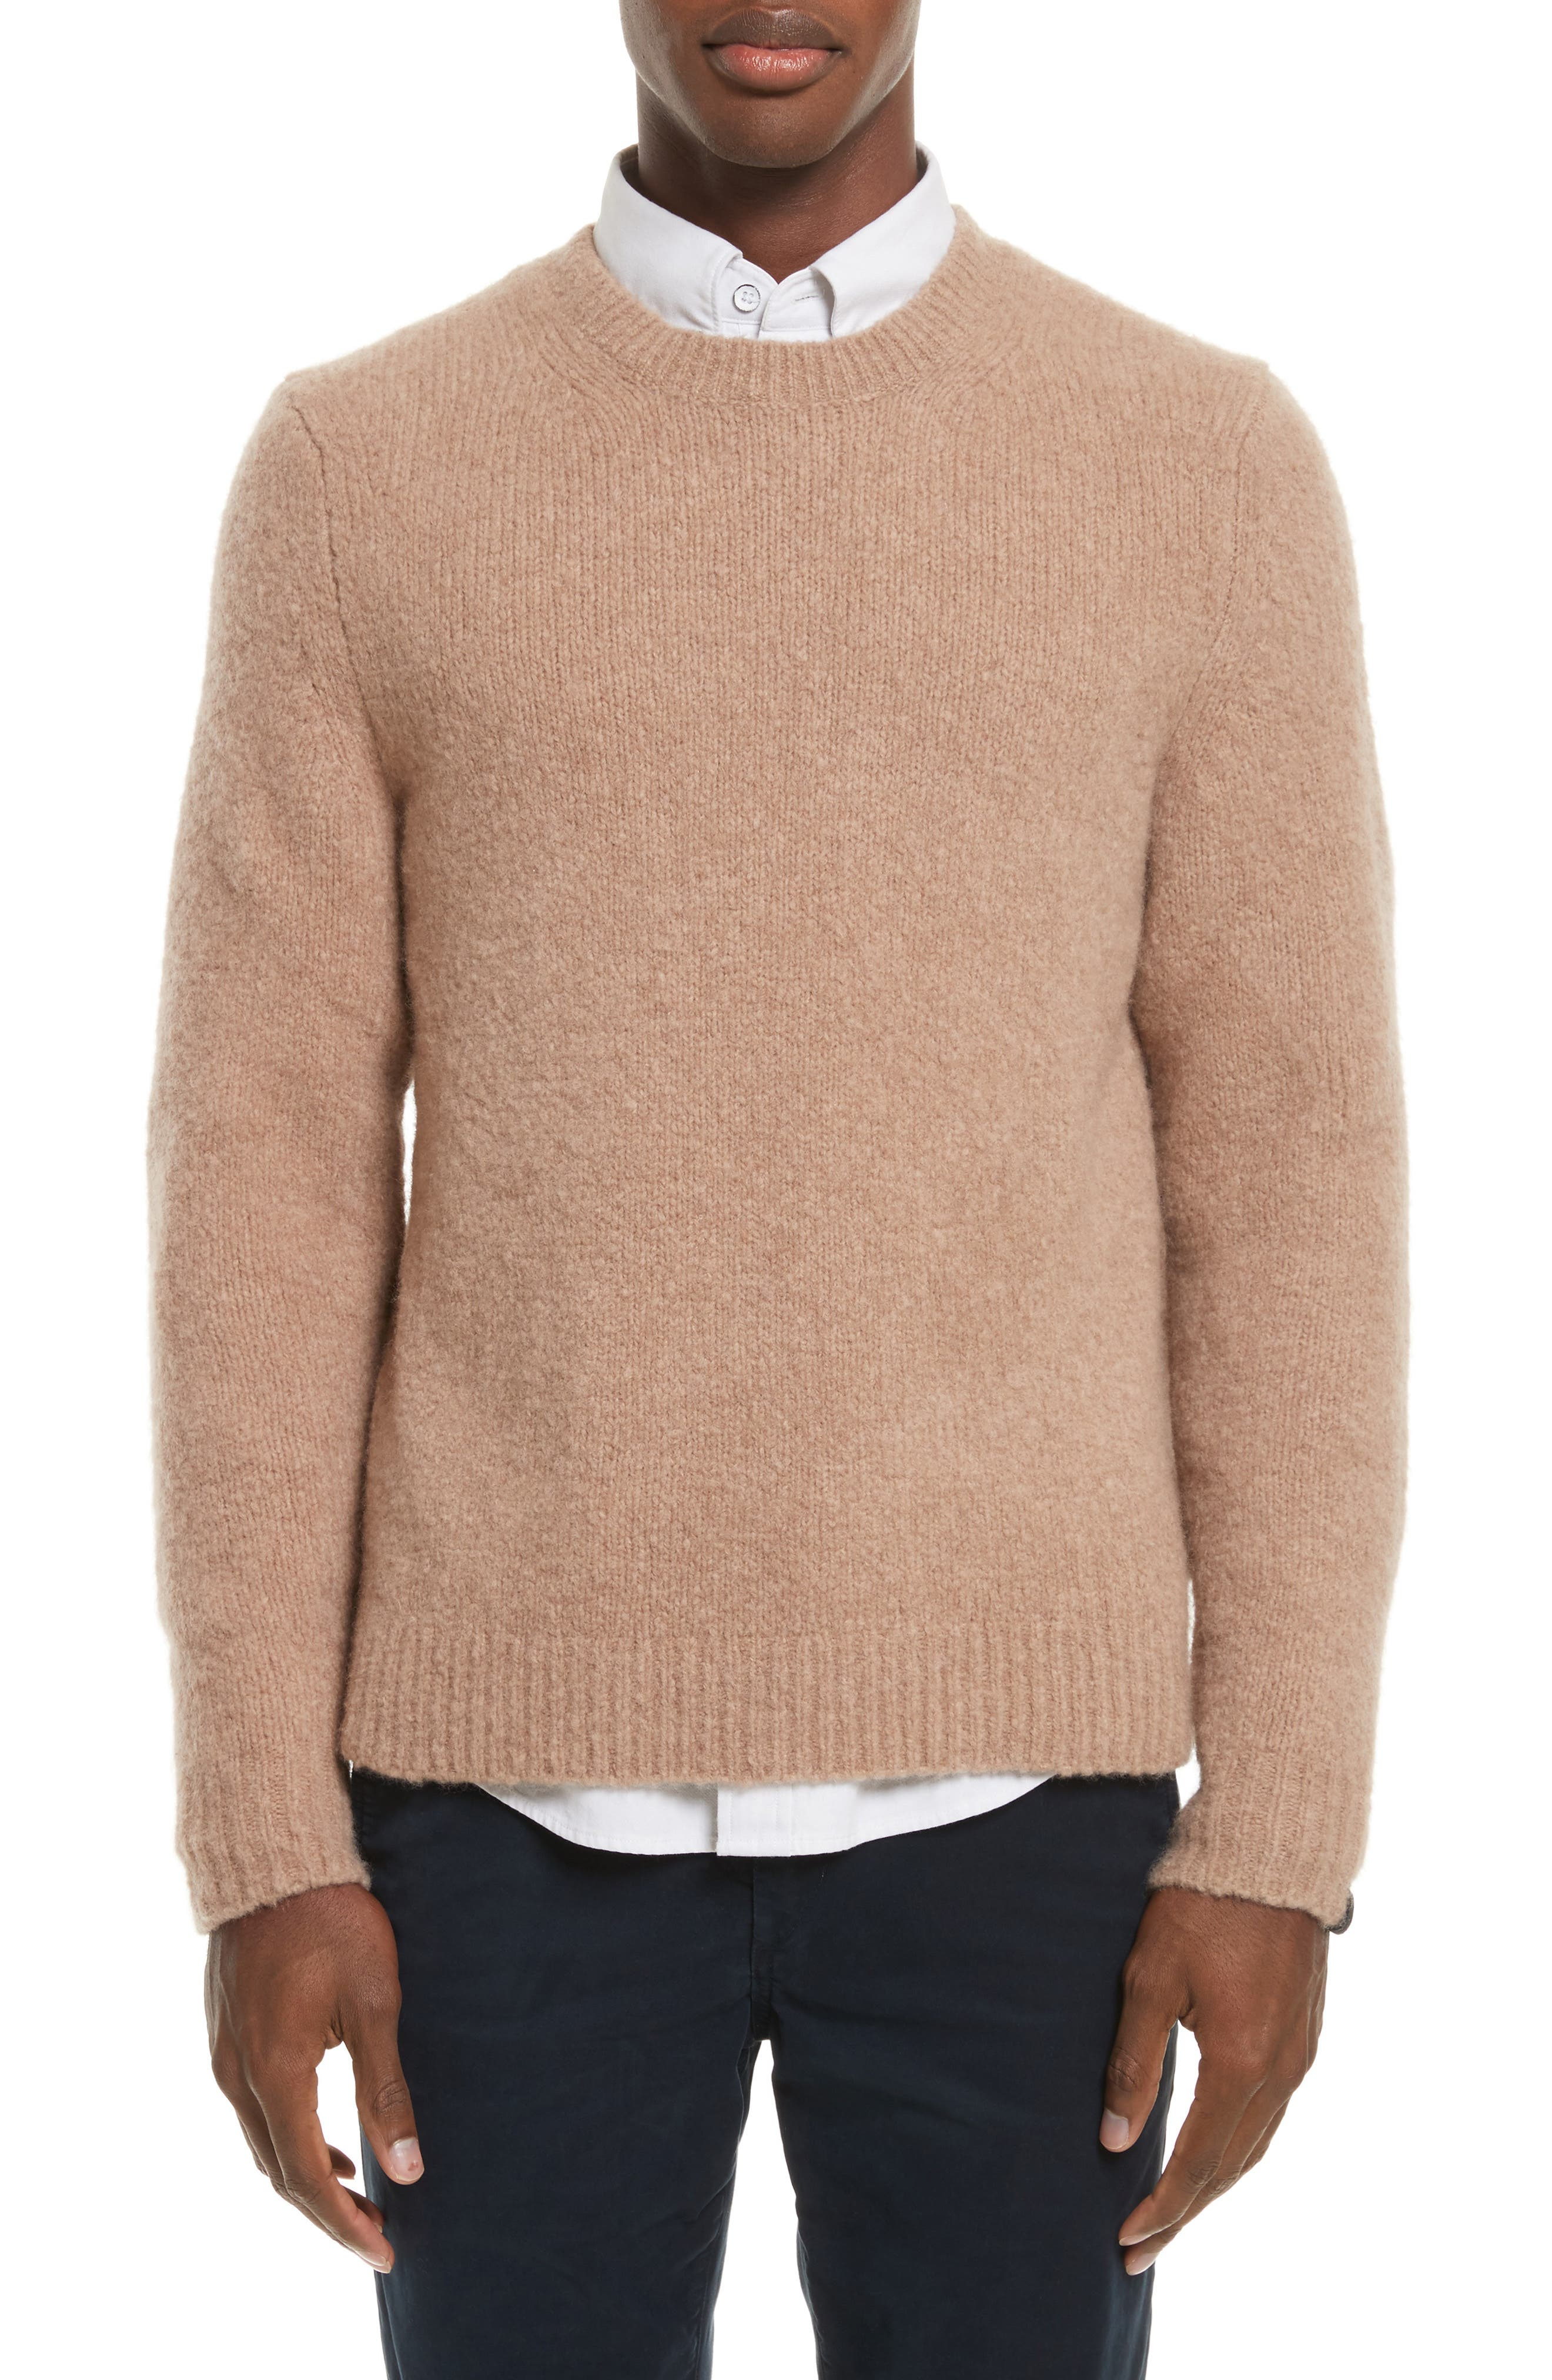 Charles Merino Wool Blend Sweater,                             Main thumbnail 1, color,                             Camel